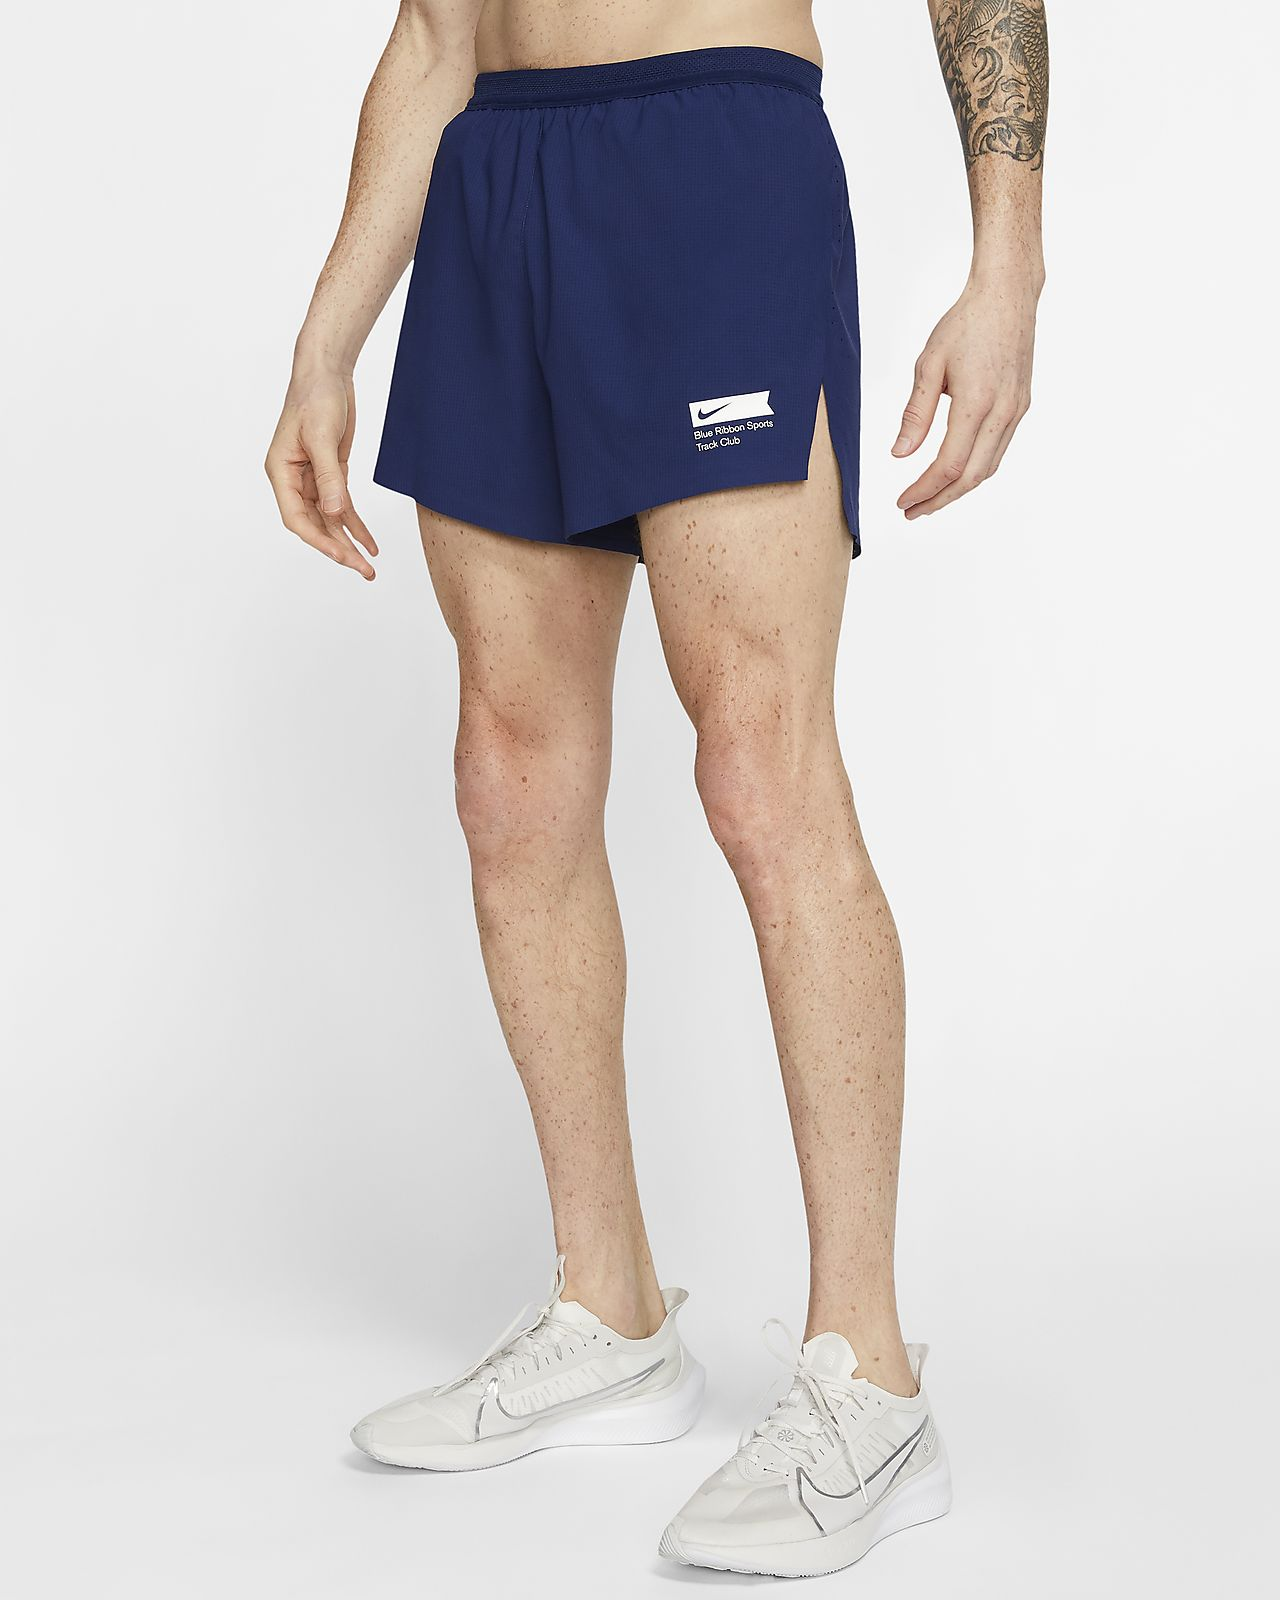 Nike AeroSwift Blue Ribbon Sports Laufshorts (ca. 11,5 cm)